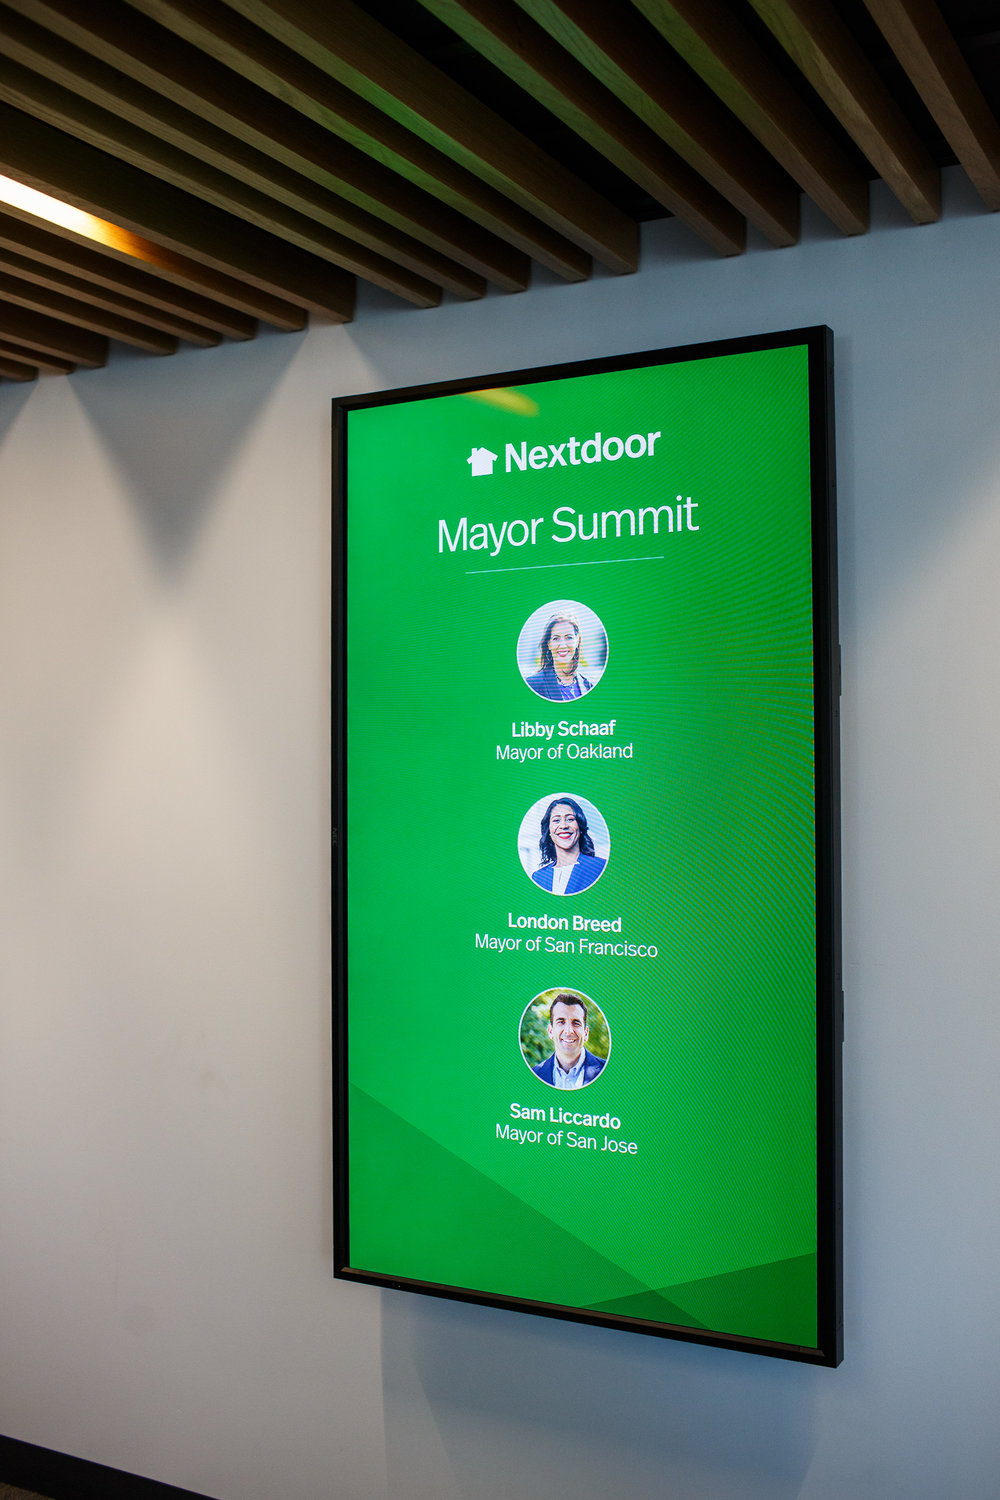 Nextdoor_MayorSummit_8-1-18-1-29.jpg